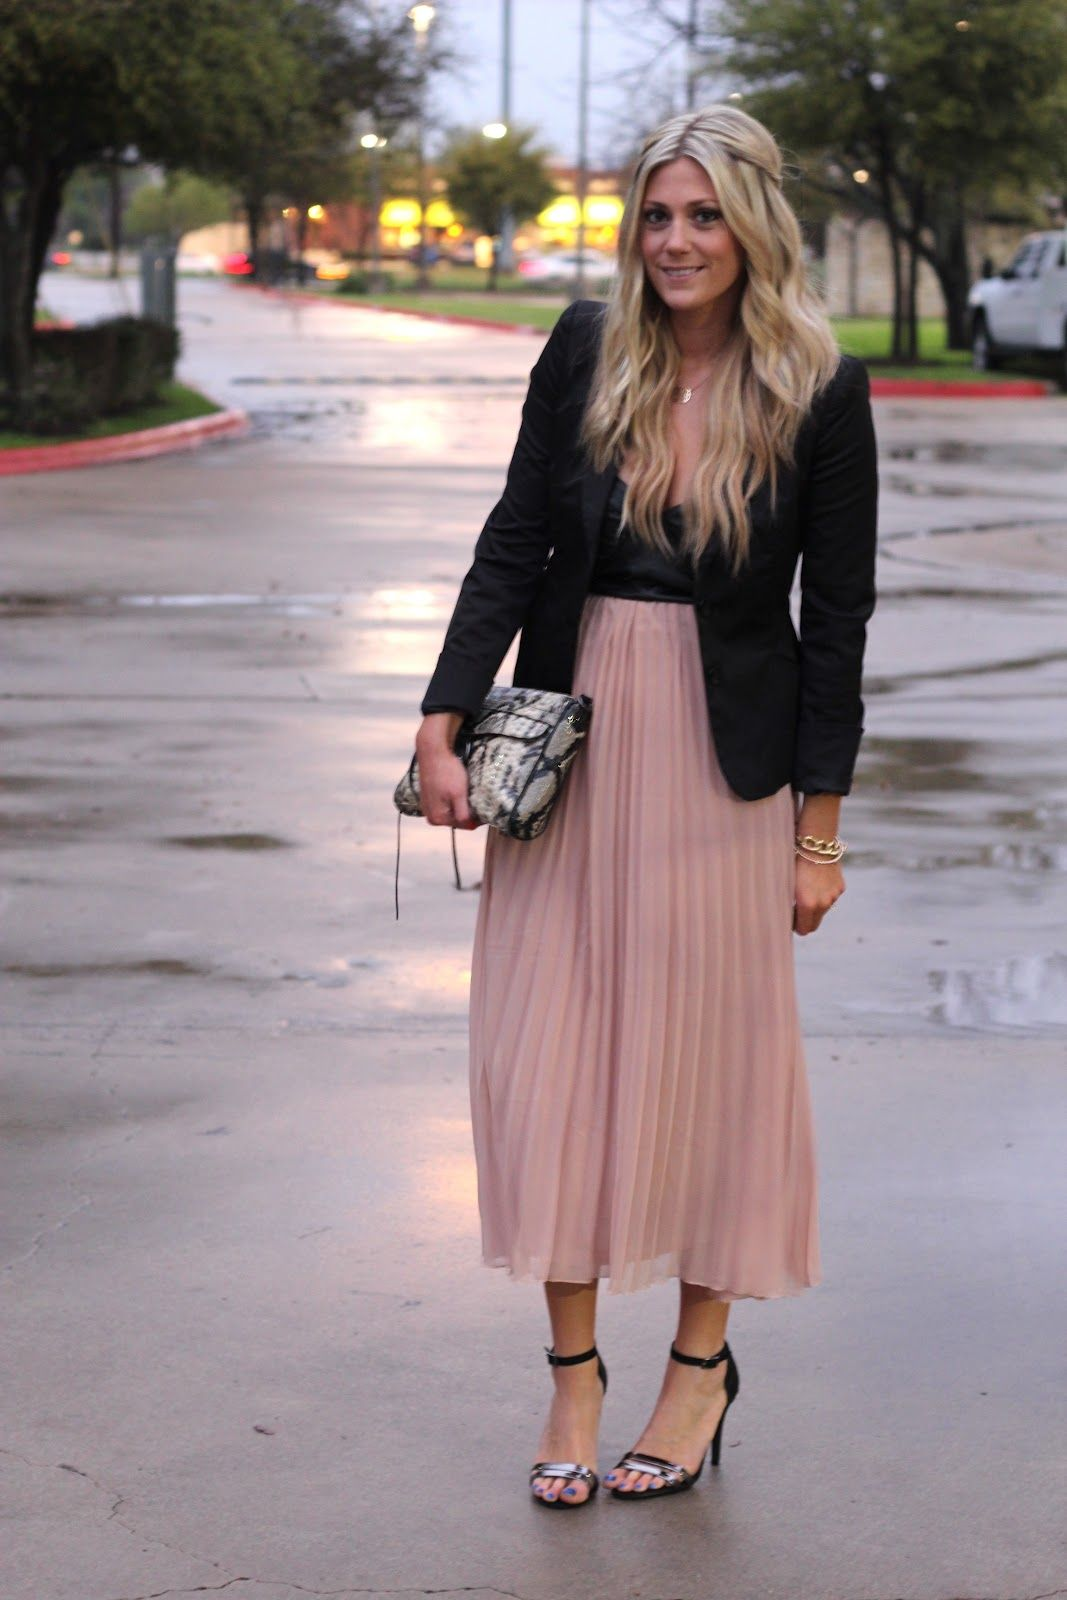 Blush Pleated Maxi Skirt, Black Blazer, Strappy Sandals. | Style ...